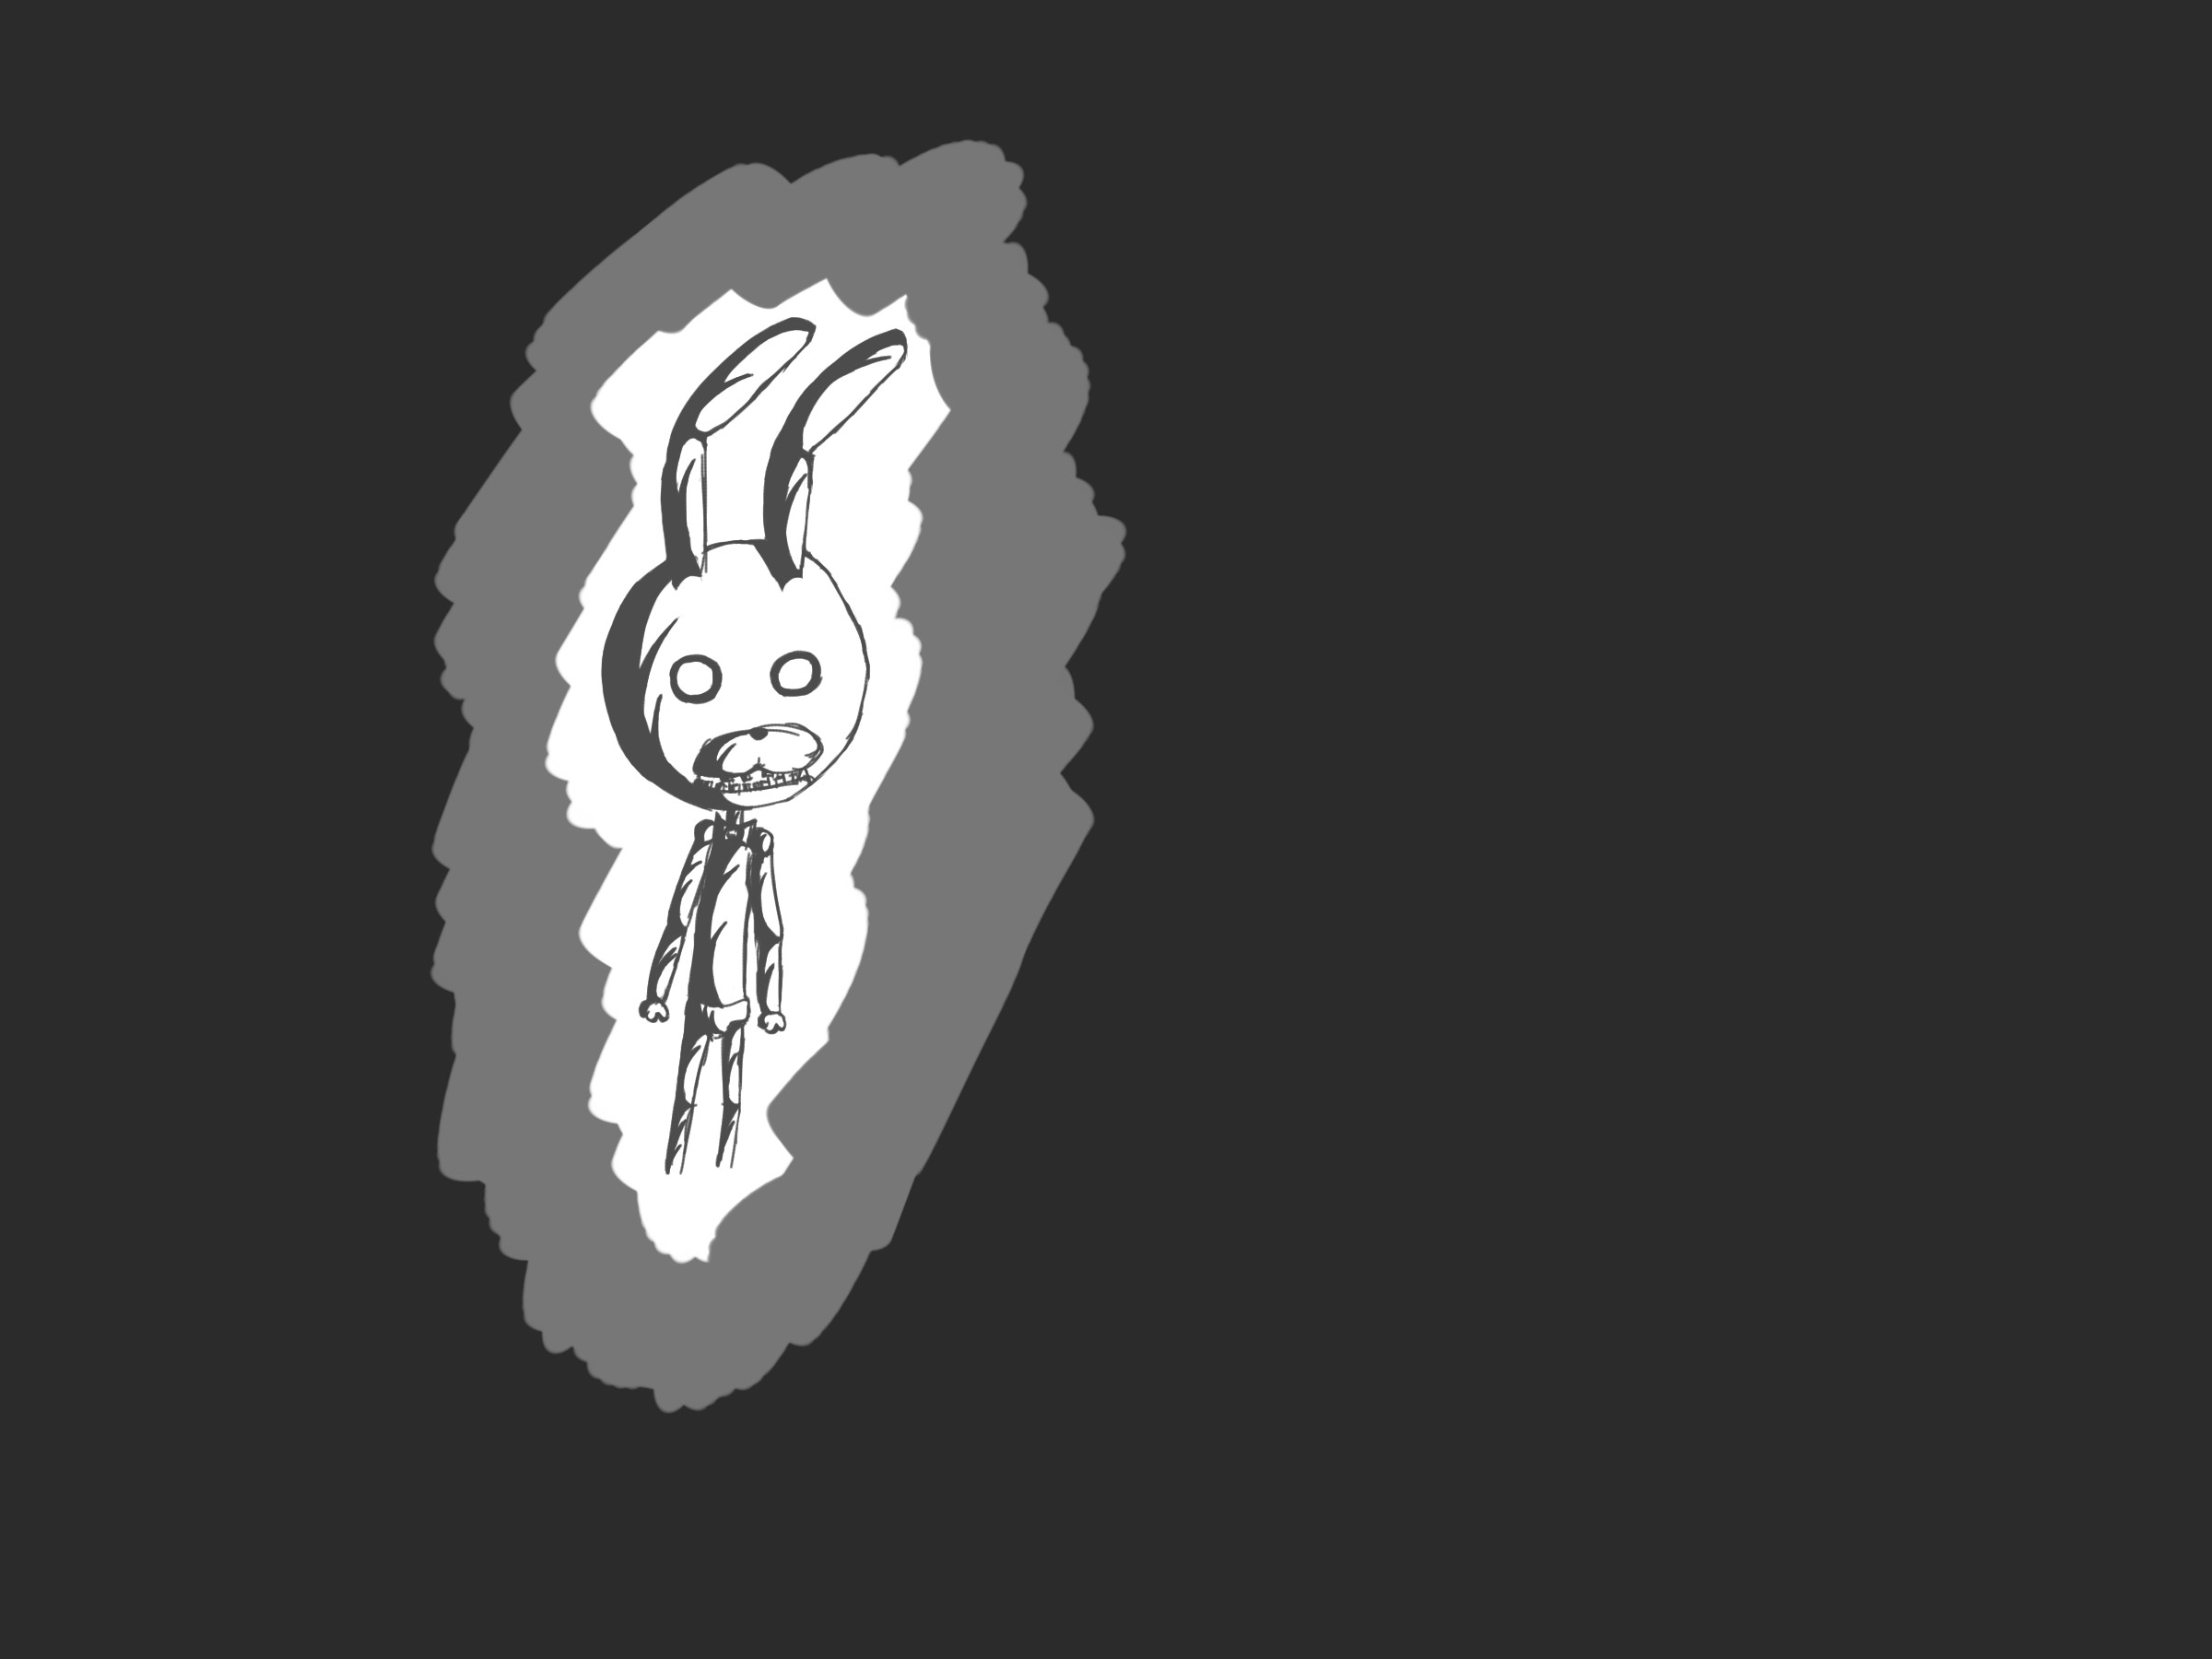 2400x1800 bonnie fnaf wallpaper bonnie five nights fnaf at eh got bored drew .